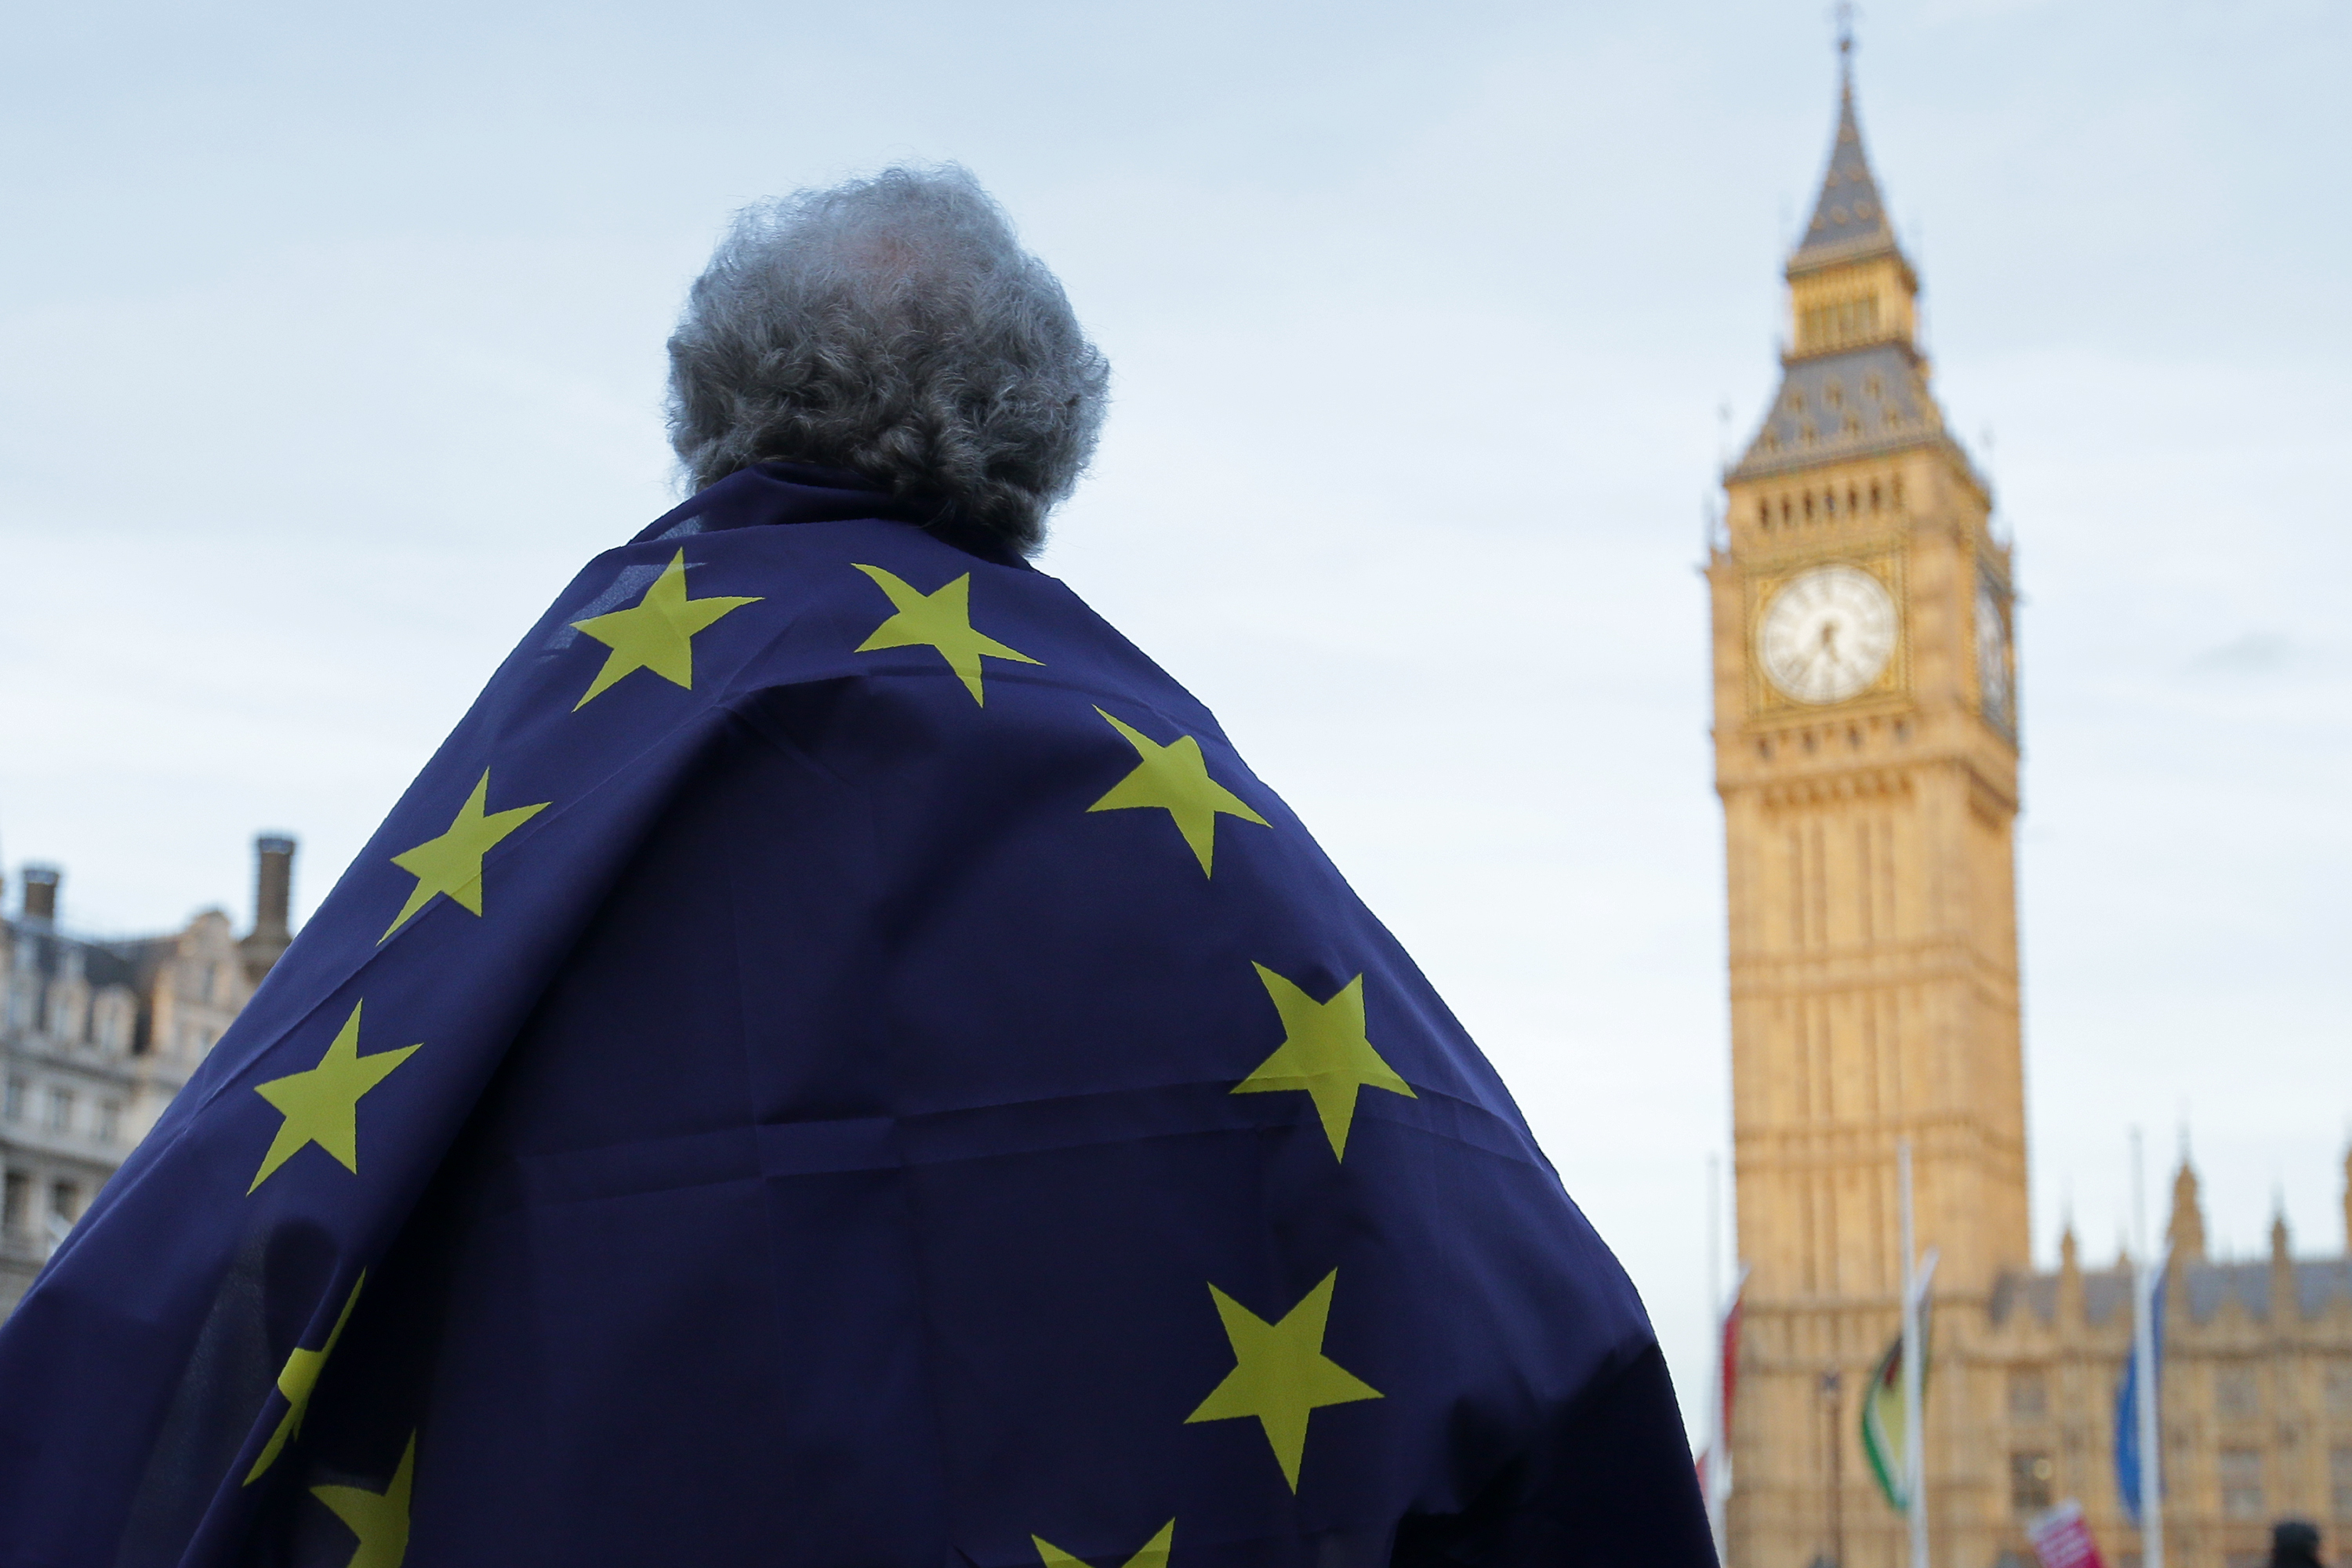 A protester outside the Houses of Parliament in London on March 13, 2017. (DANIEL LEAL-OLIVAS/AFP/Getty Images)